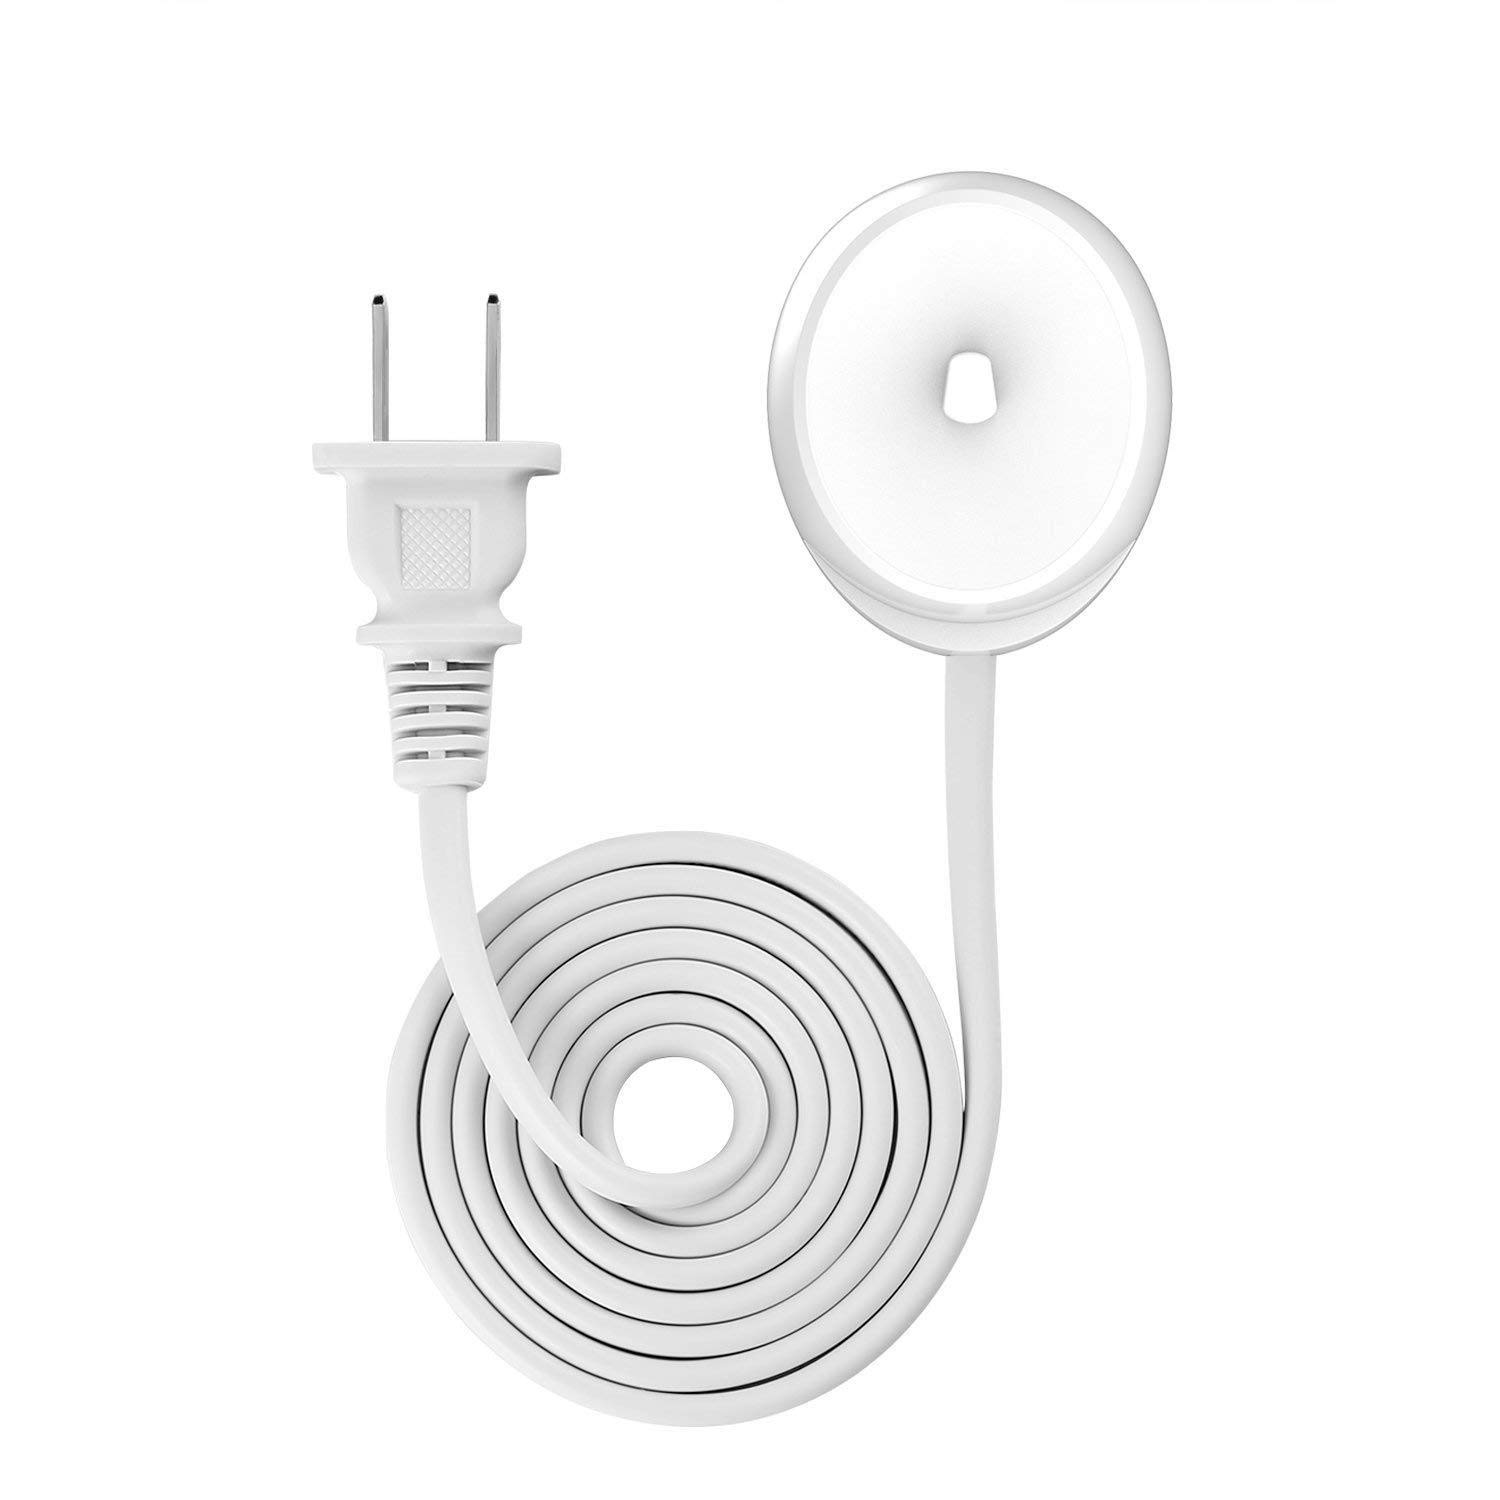 APMIXI Replacement Shipping included Limited price Electric Toothbrushes Charger for Base Ph Fit